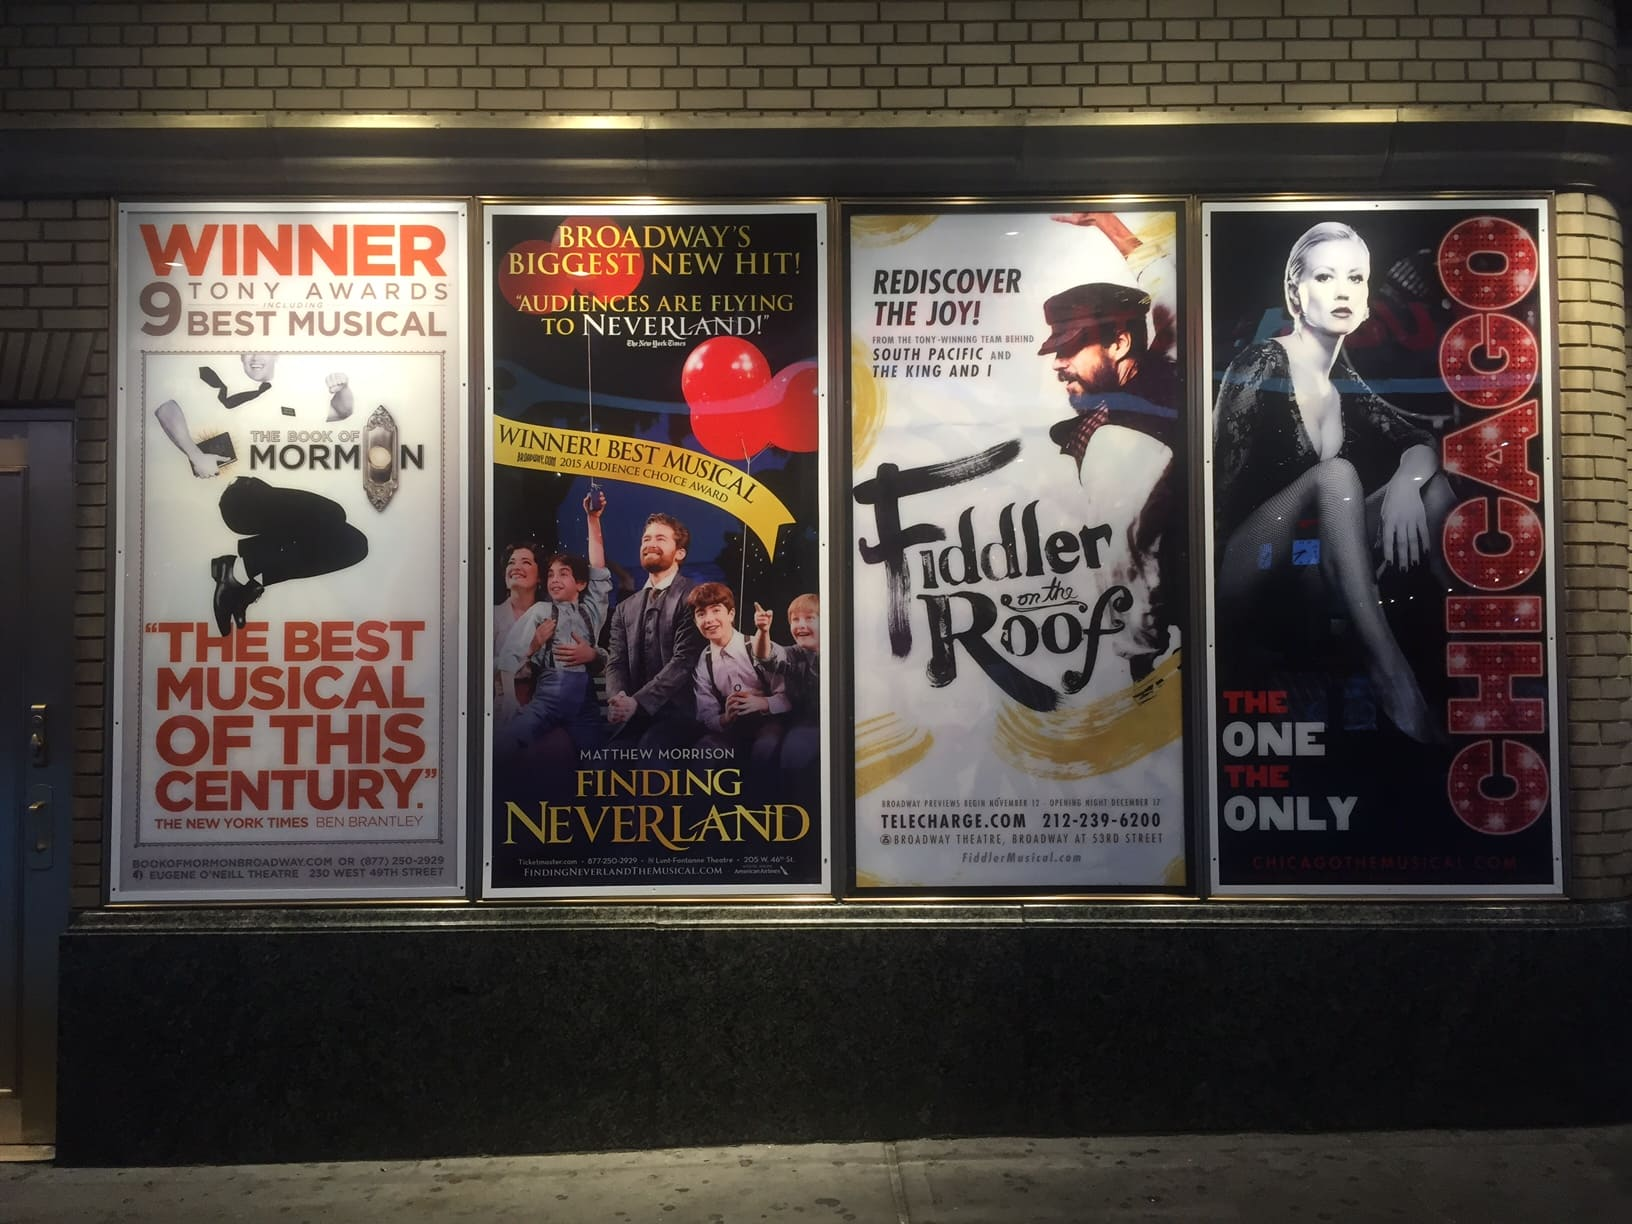 7 Ways to Find Cheap Broadway Show Tickets